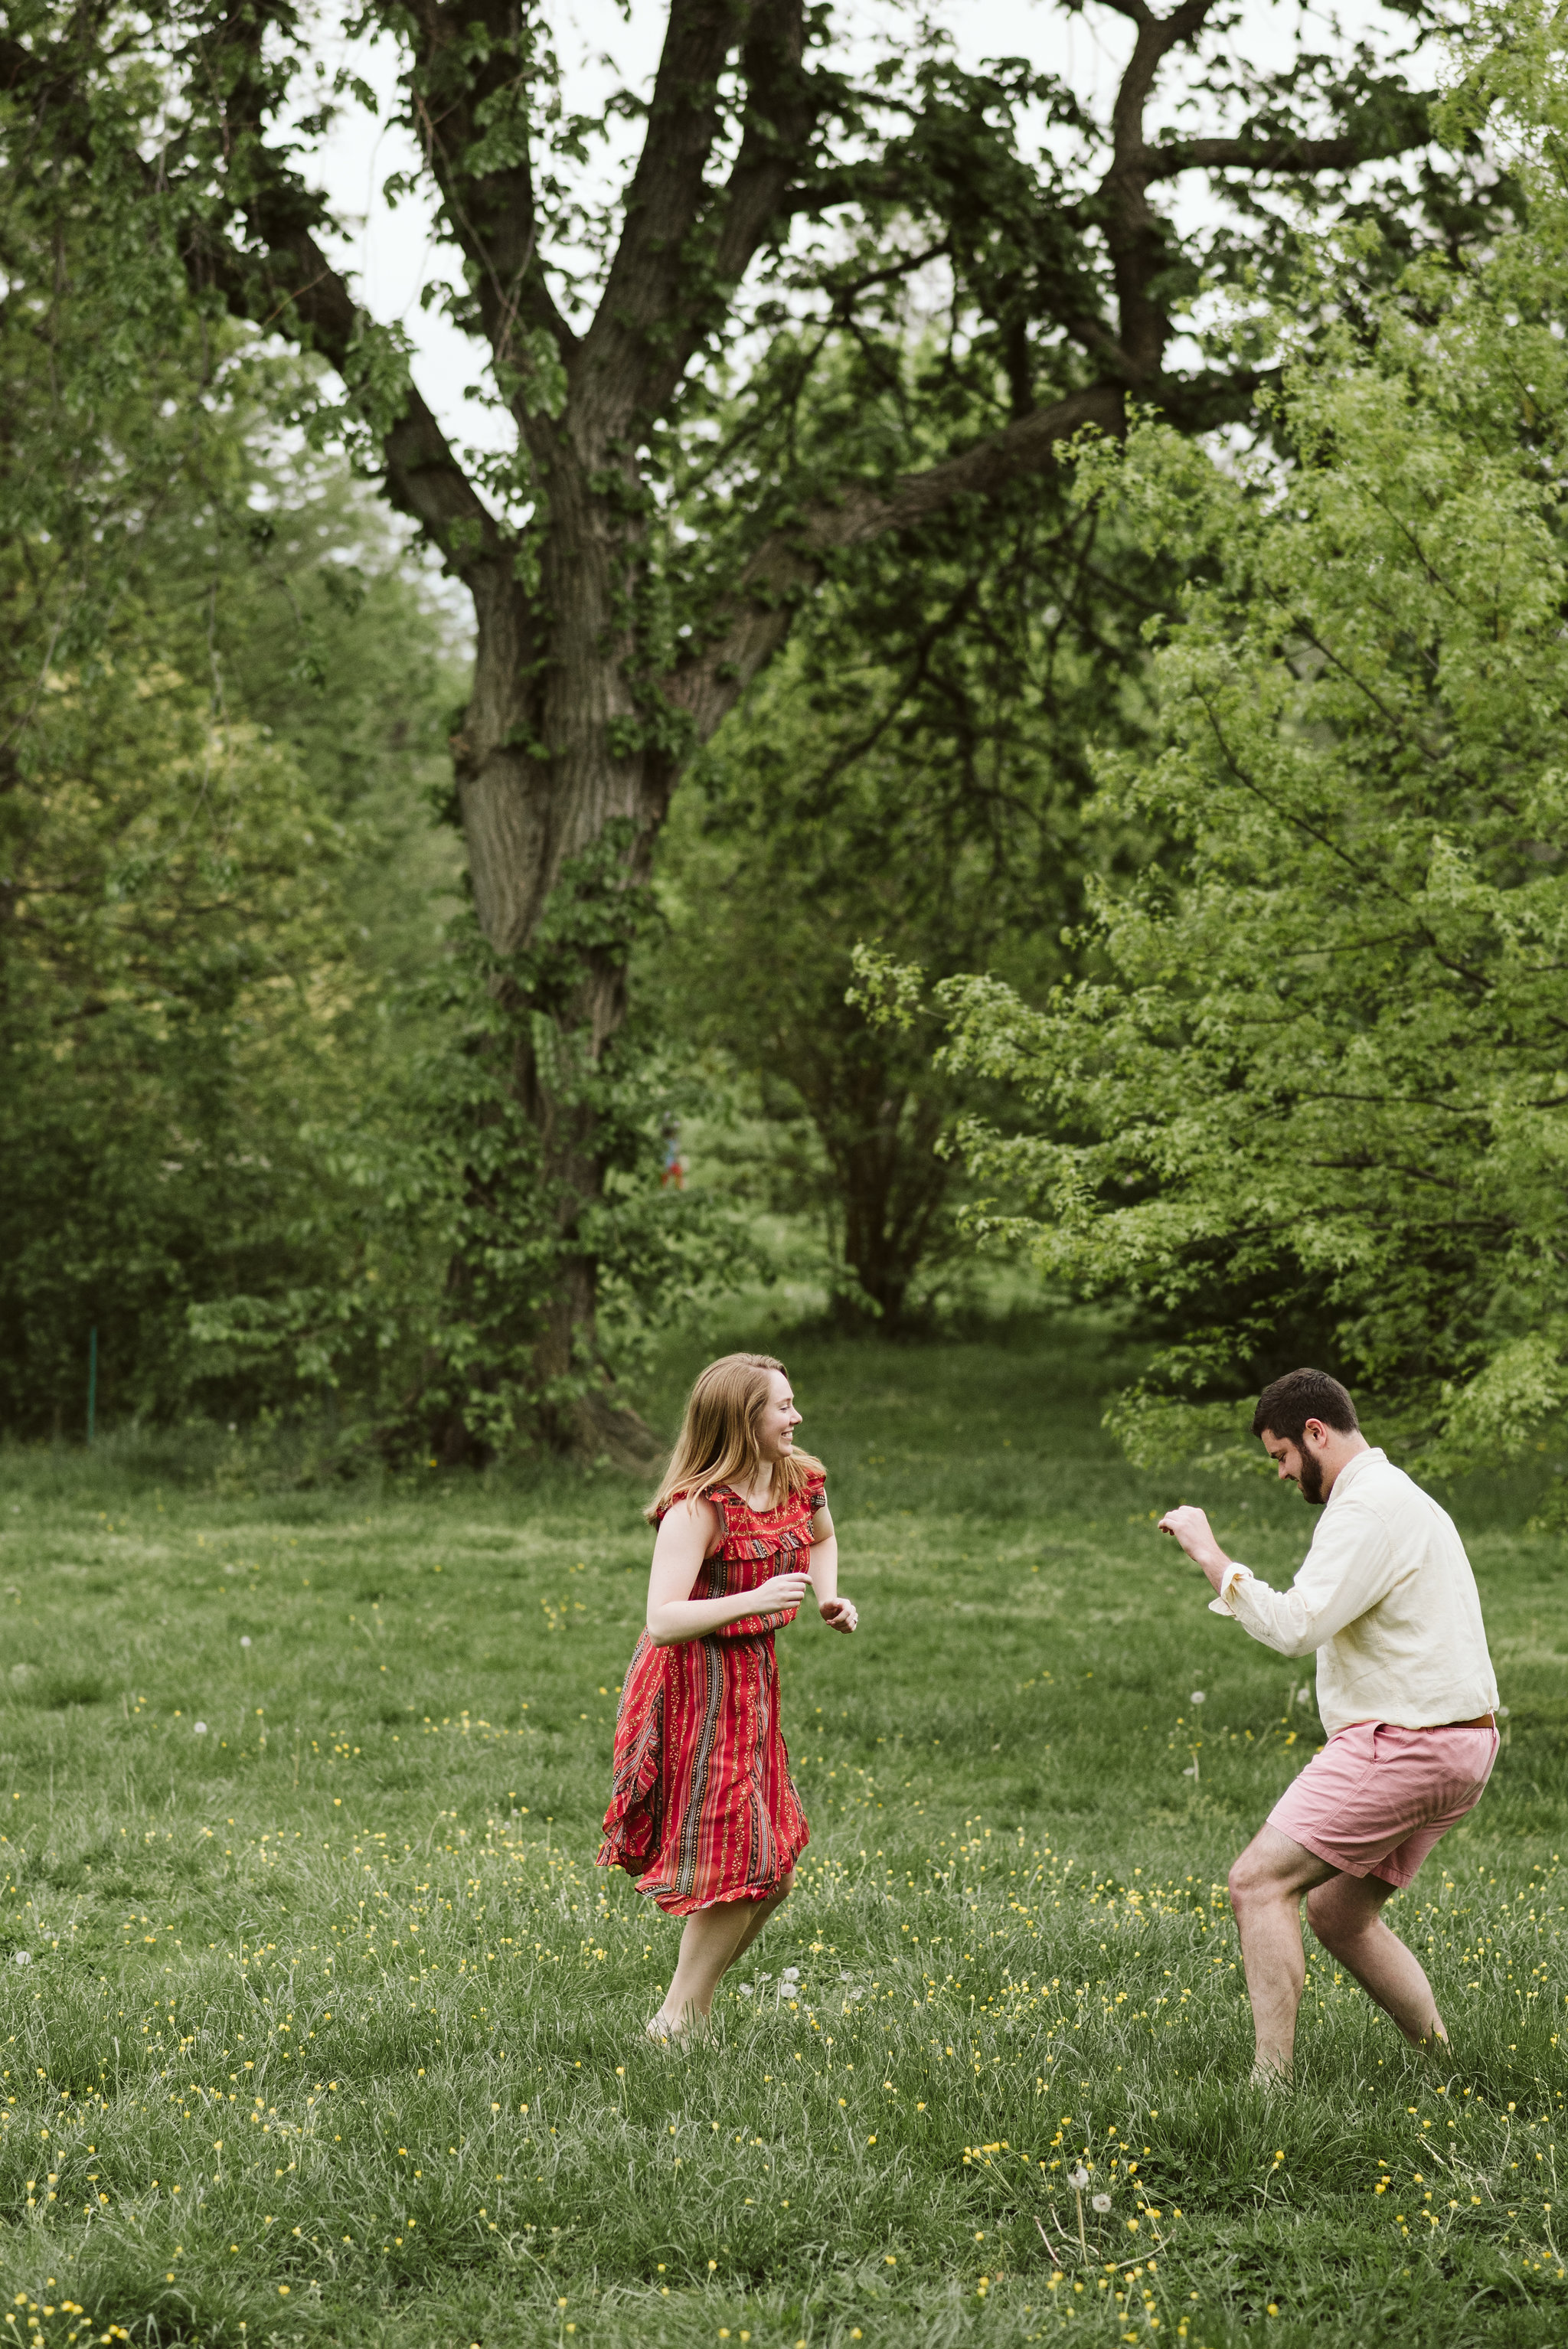 Engagement Photos, Patterson Park, Baltimore, Maryland Wedding Photographer, Casual, Fun, Nature, Couple Dancing Together in a Field